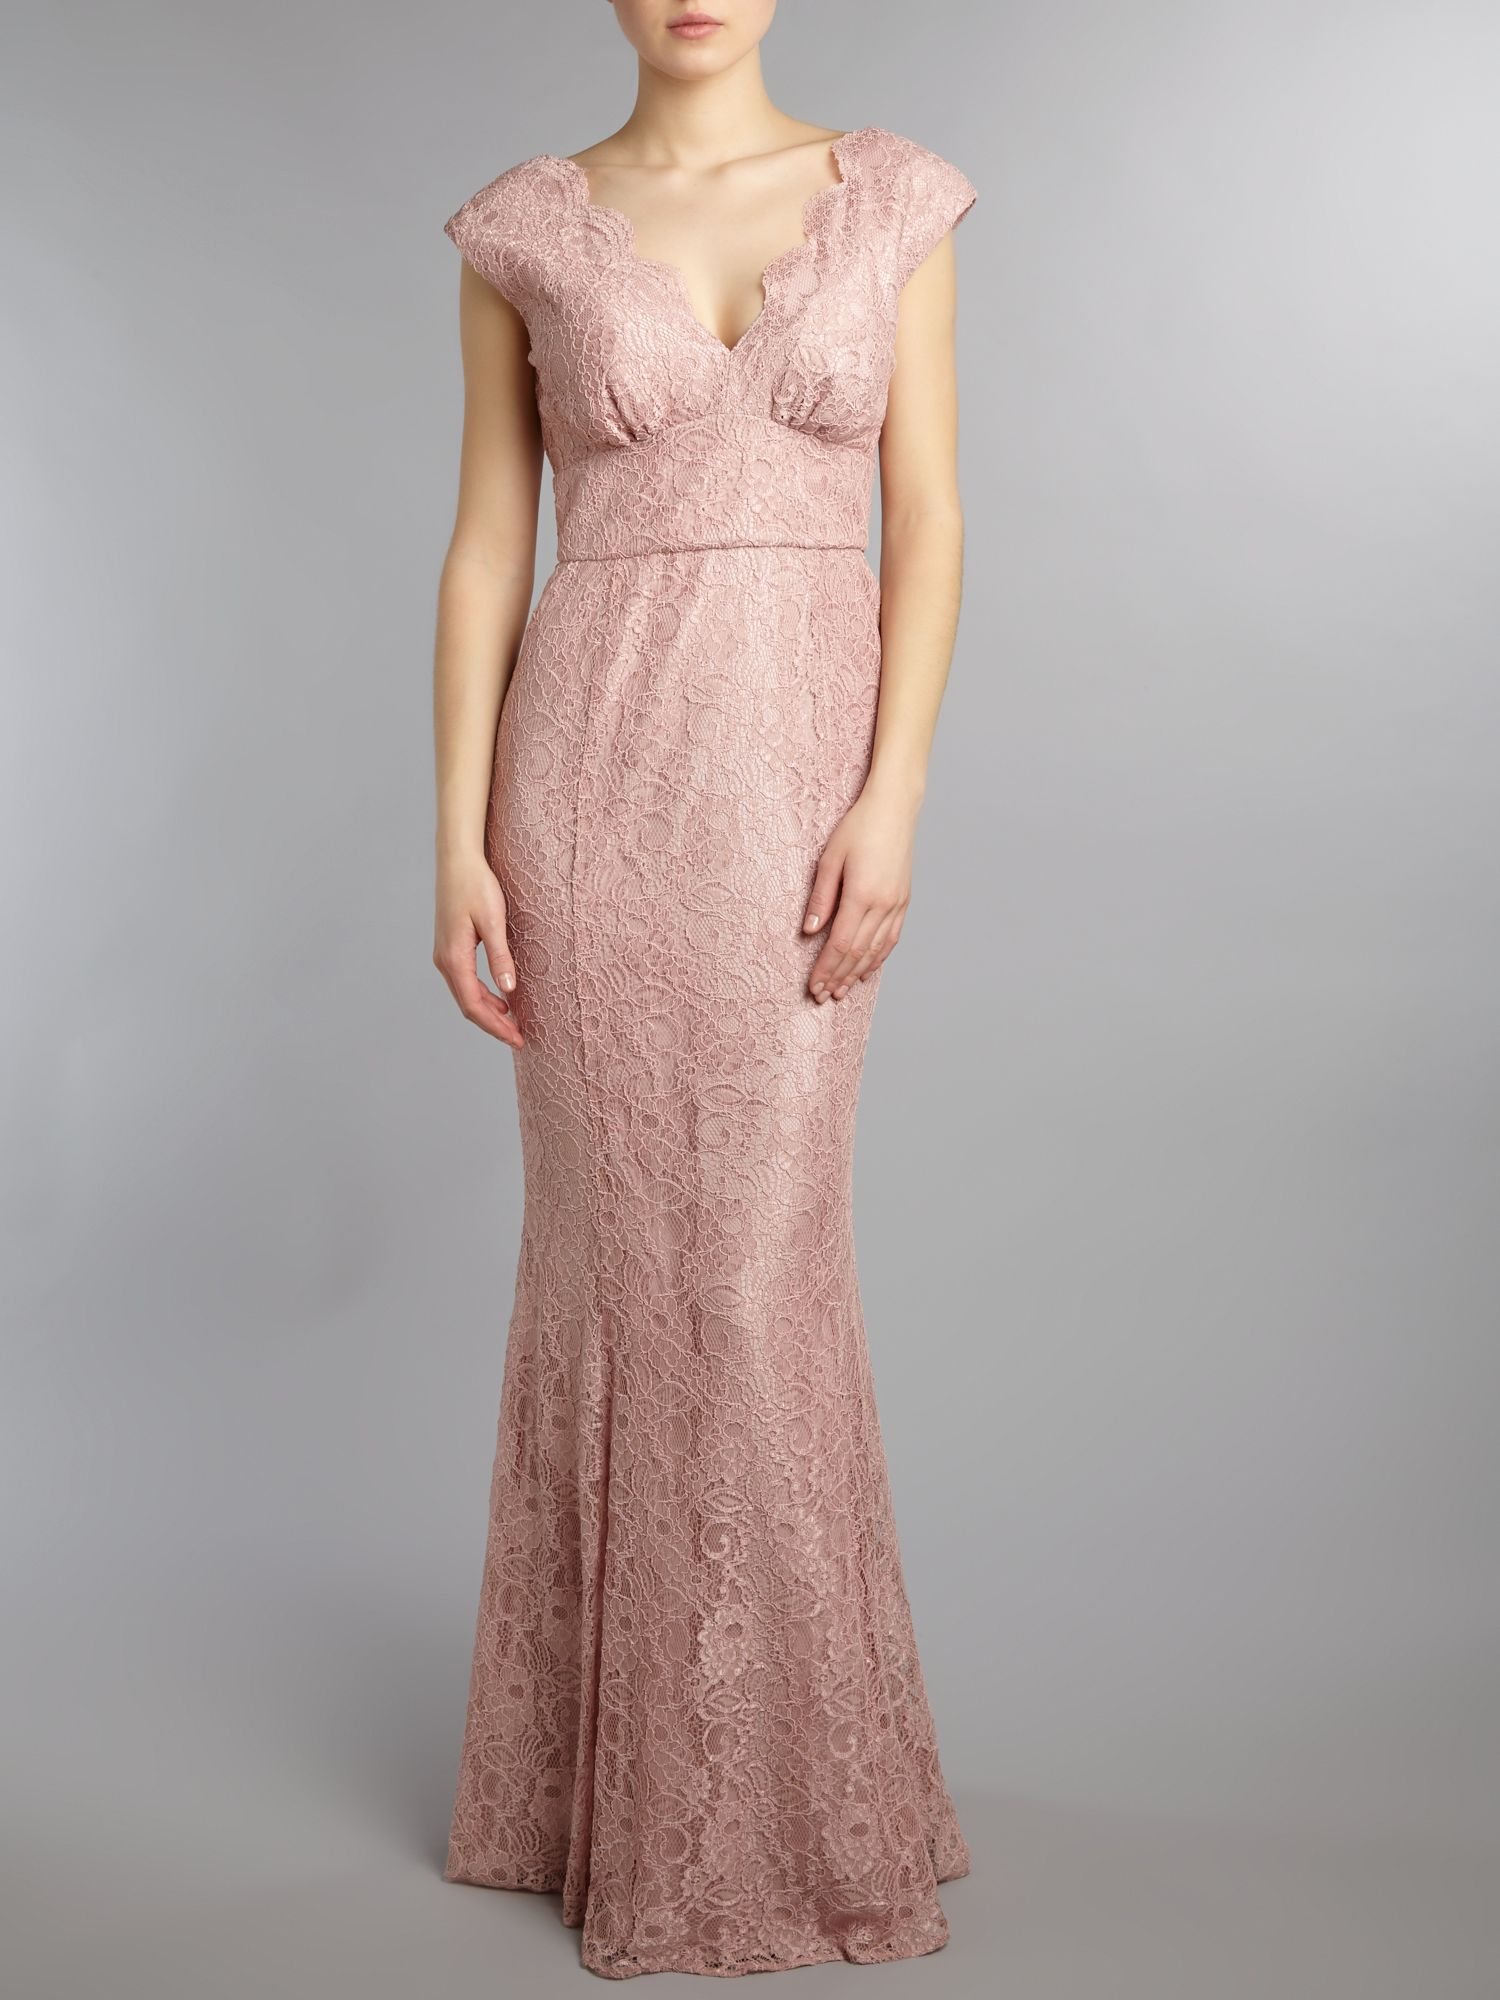 Old Fashioned House Of Fraser Bridesmaid Dresses Images - Wedding ...